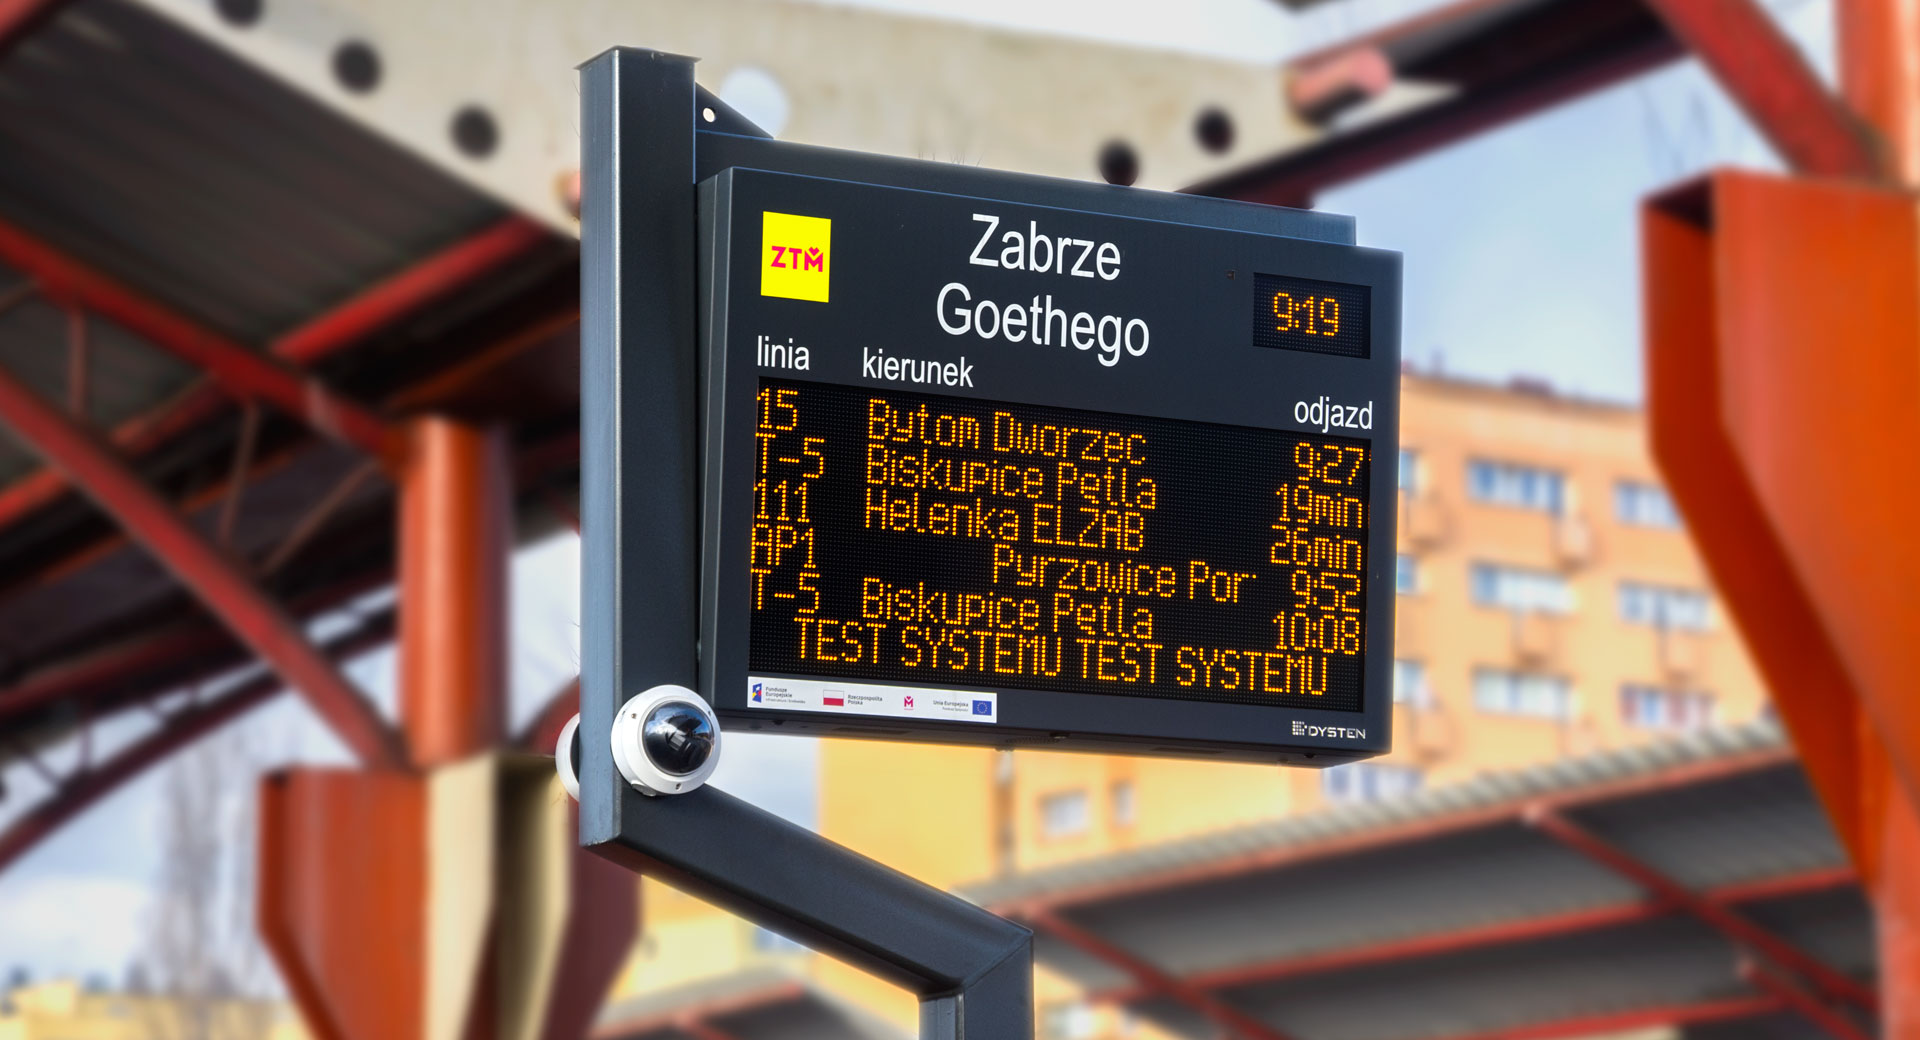 SDIP DPIDS Dynamic Passenger Information Display System. LED amber passenger information board. High-resolution surveillance camera. Text-to-speech system. The extension of passenger information system for 460 bus and tram stops KZKGOP ZTM GZM Metropolis, Poland